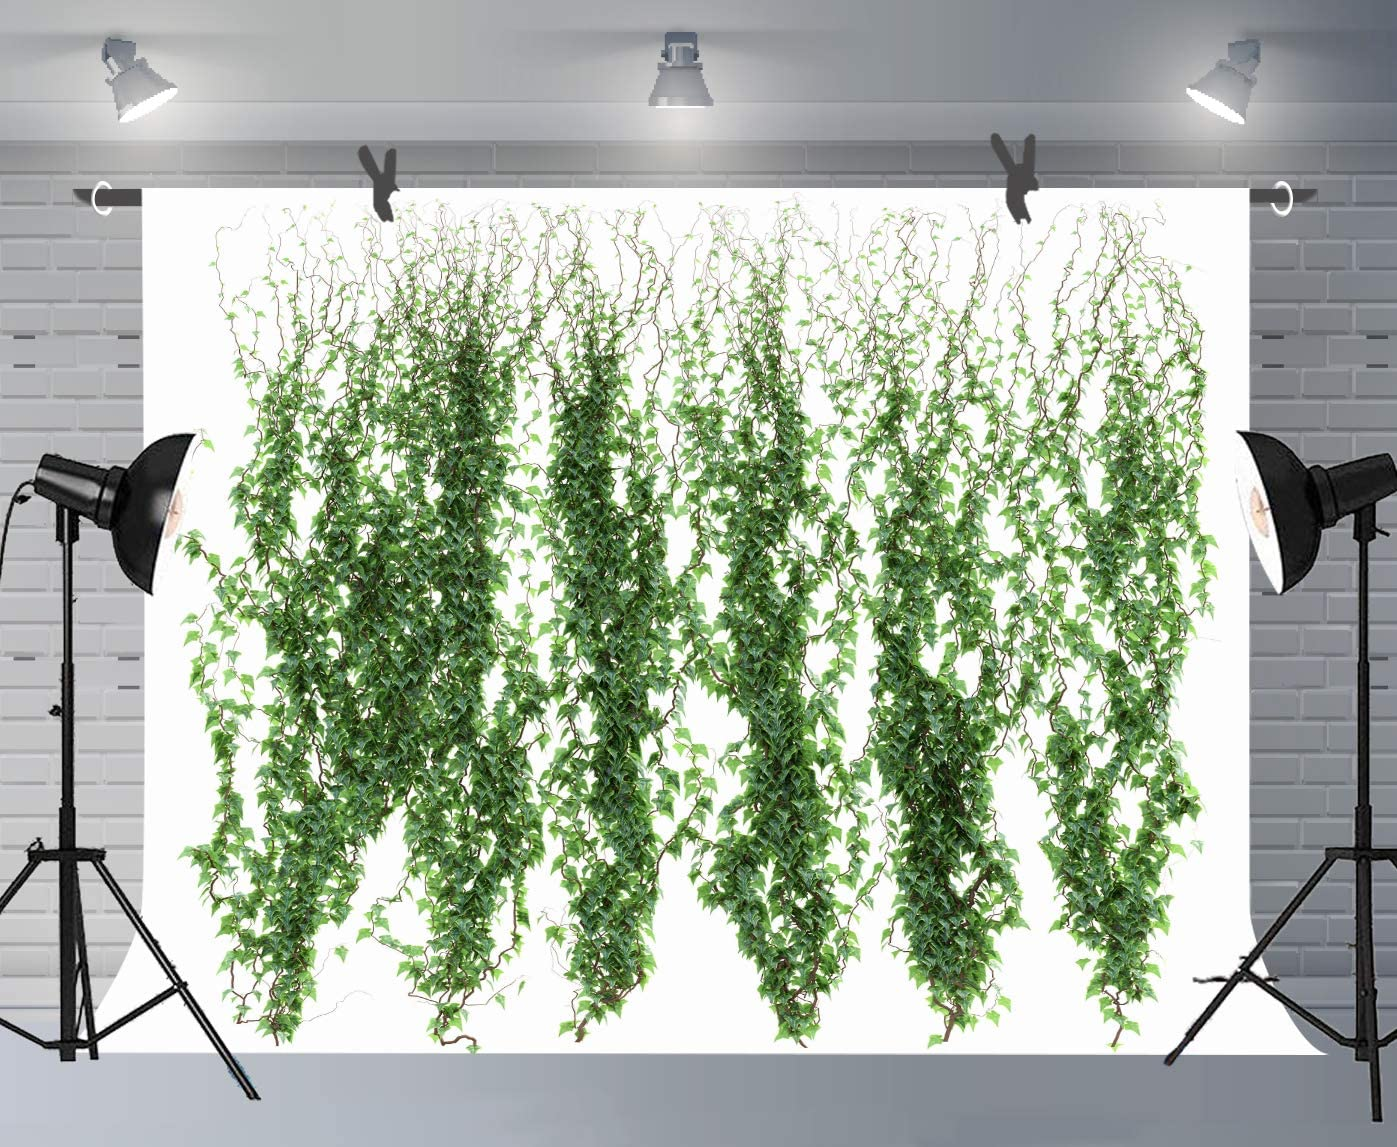 FUERMOR Plant Vine Backdrop Green Plant Leaf Background for Photography Wedding Birthday Party Banner Decoration Studio Props 7x5ft BJSYFU104